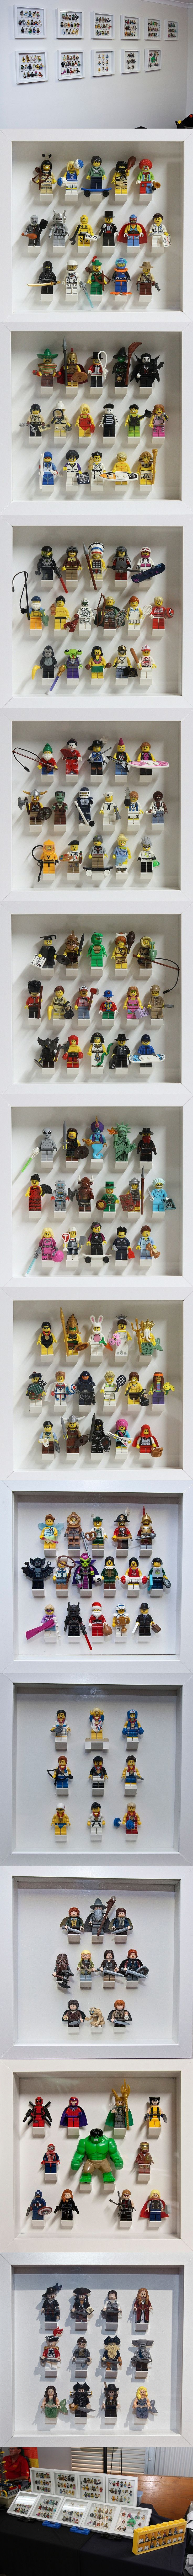 Collectible Minifigures in IKEA Ribba Frames #LEGO #Minifigures #IKEA http://www.Adopt-A-Brick.com/